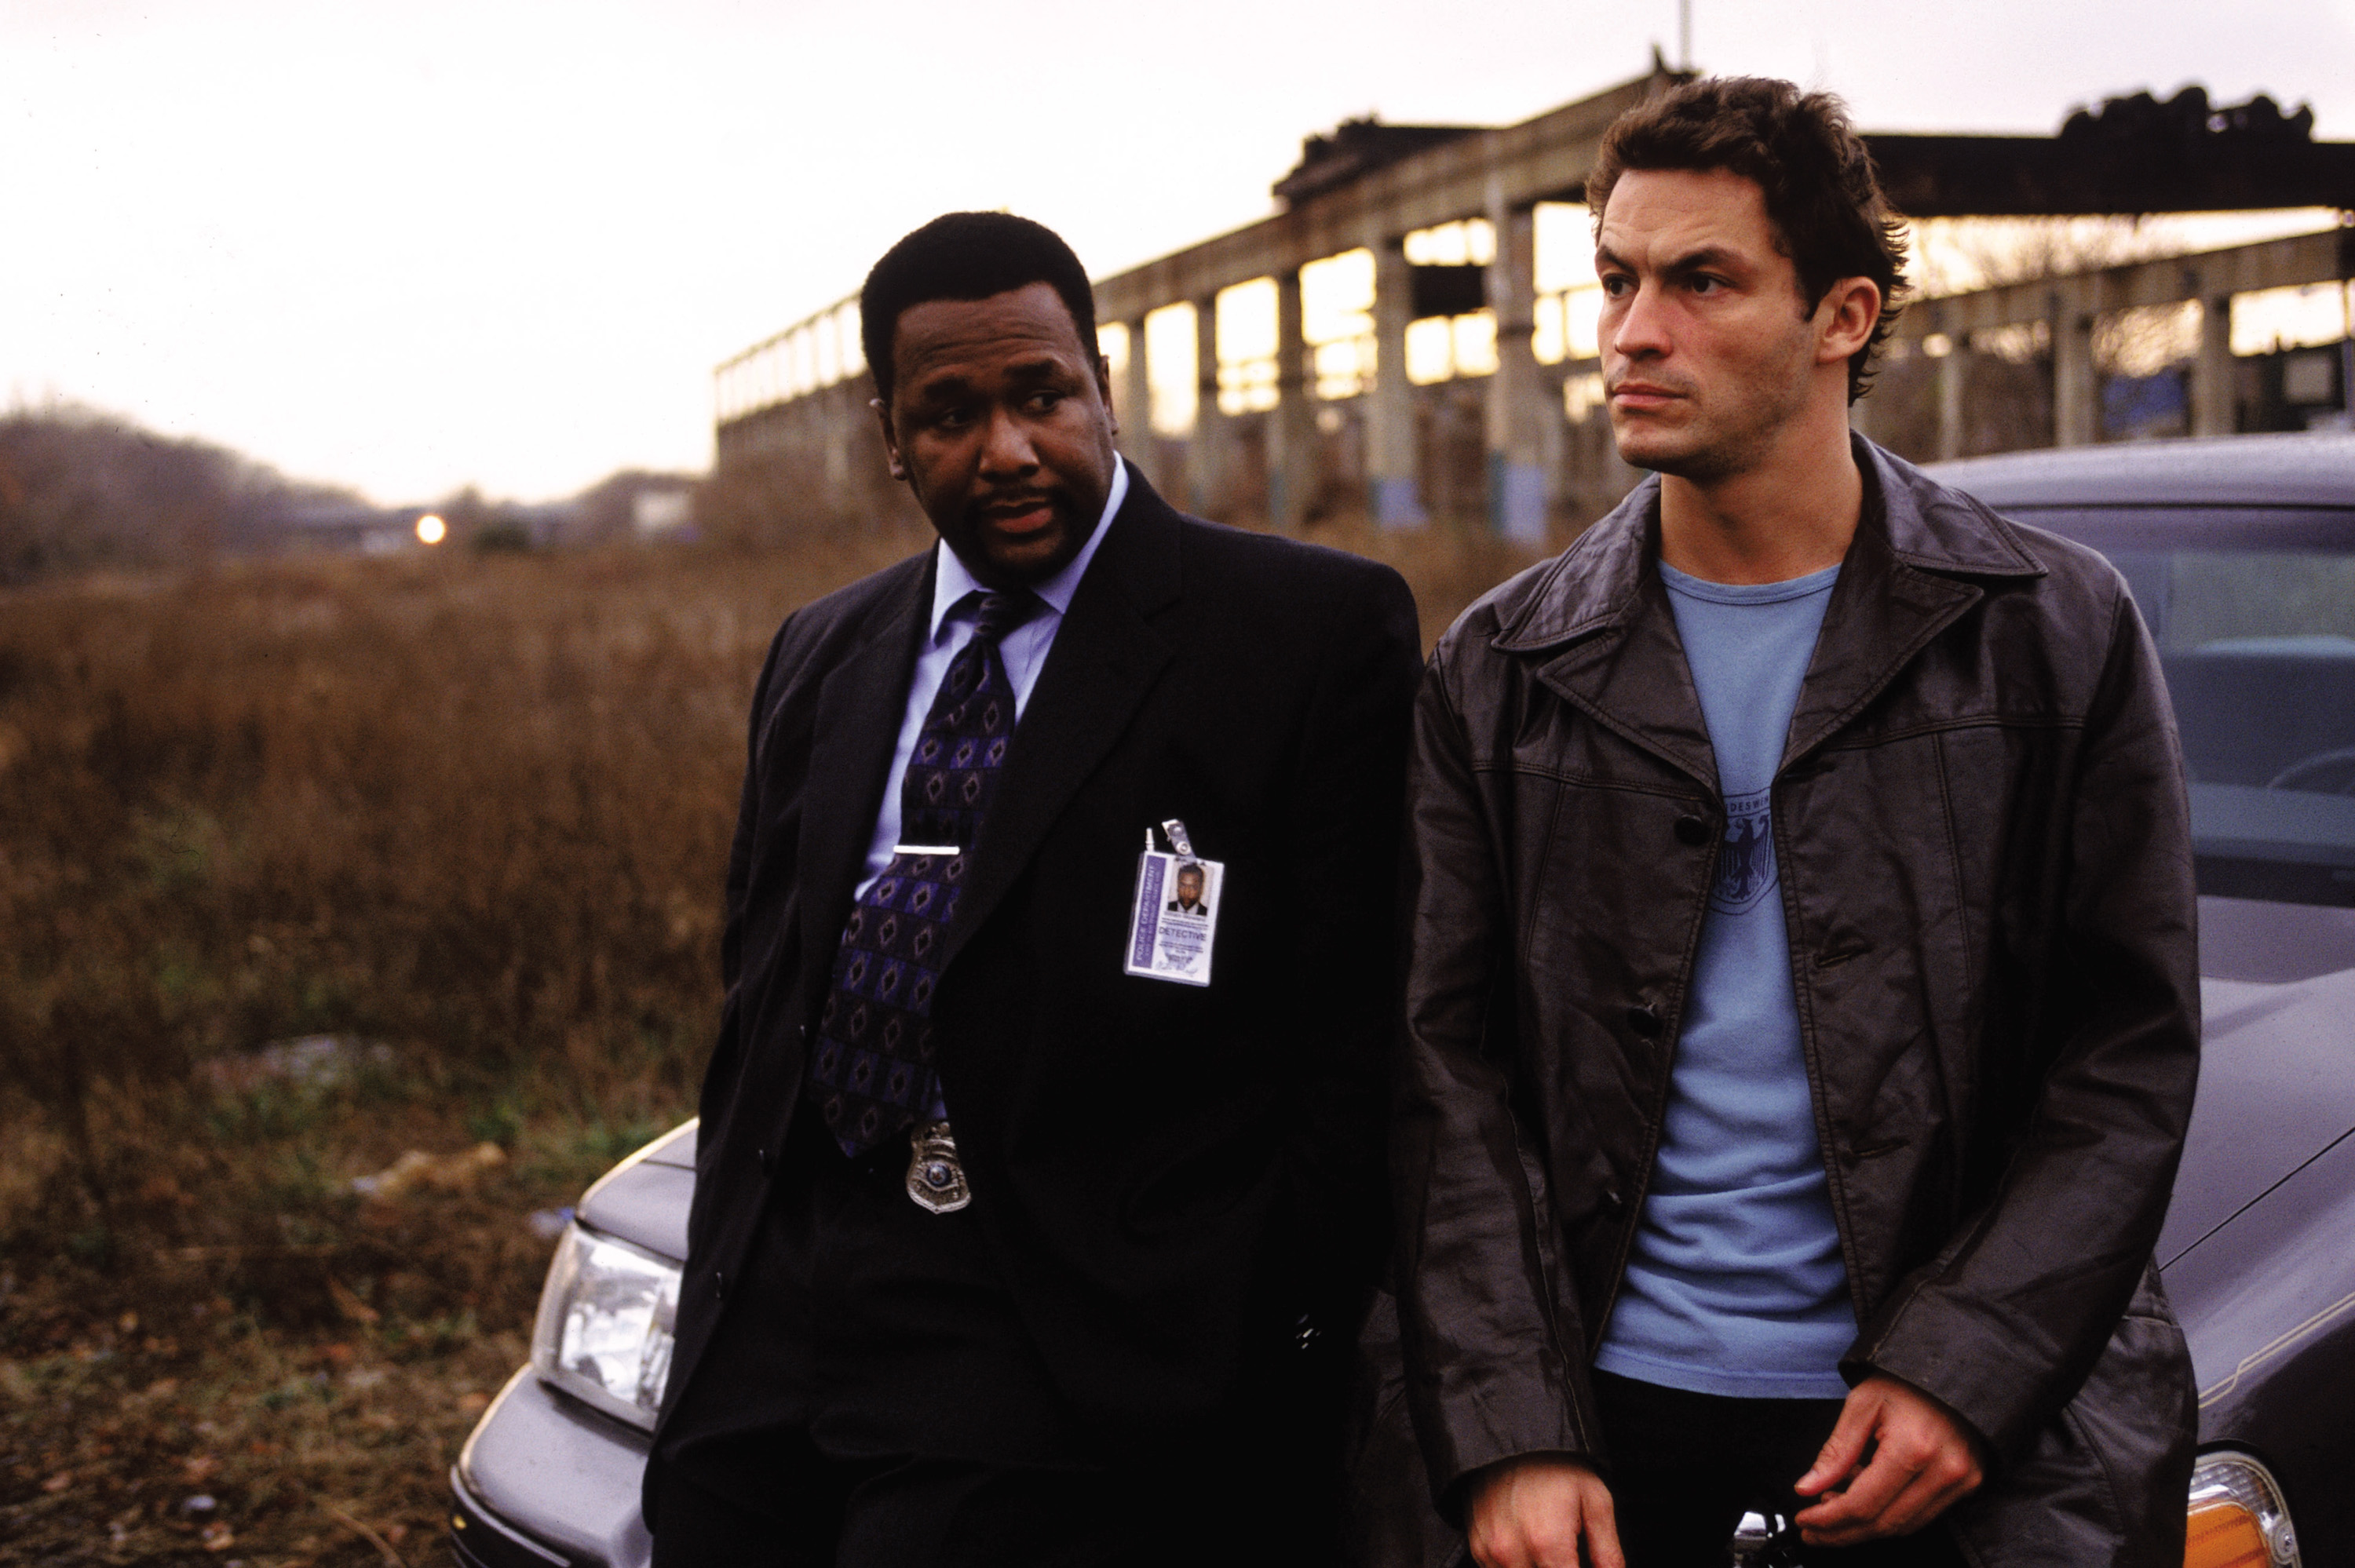 Wendell Pierce and Dominic West in The Wire